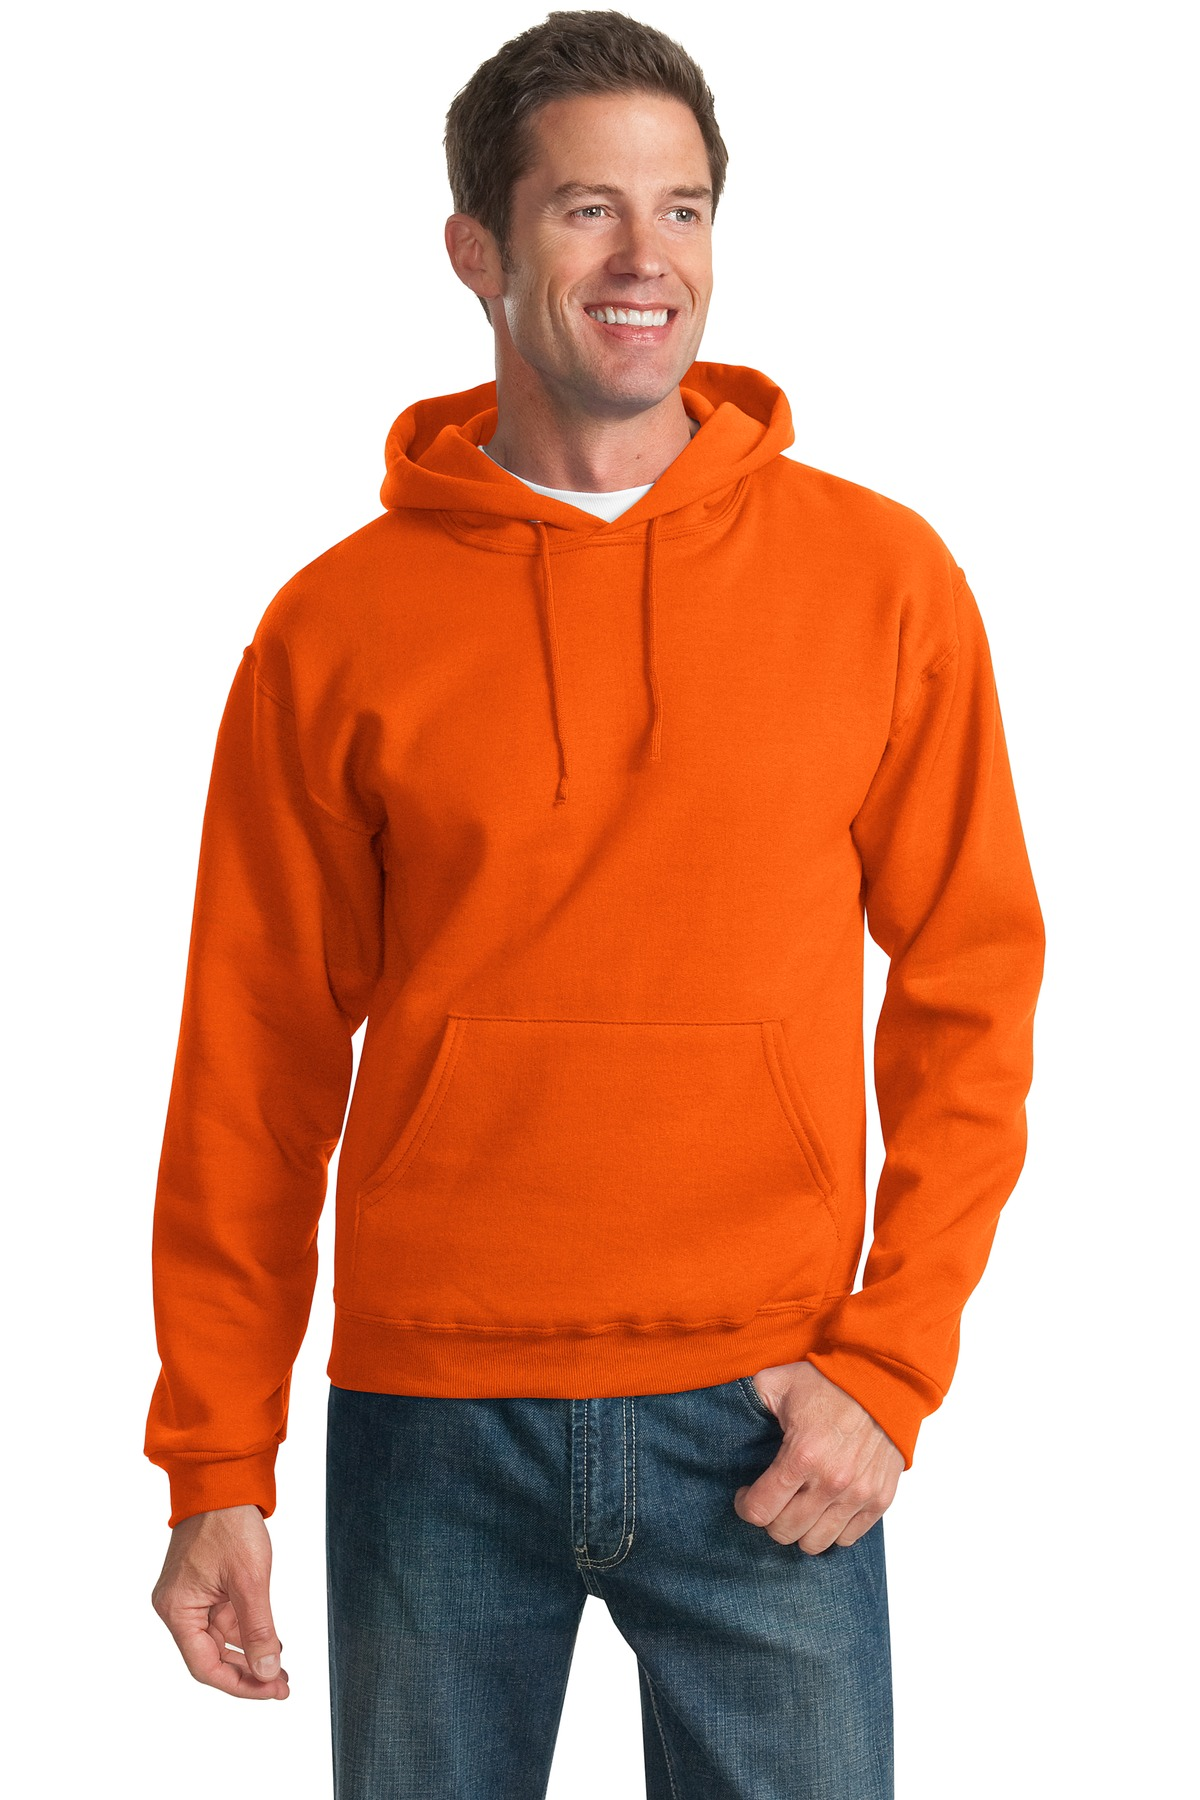 JERZEES ®  - NuBlend ®  Pullover Hooded Sweatshirt.  996M - Burnt Orange